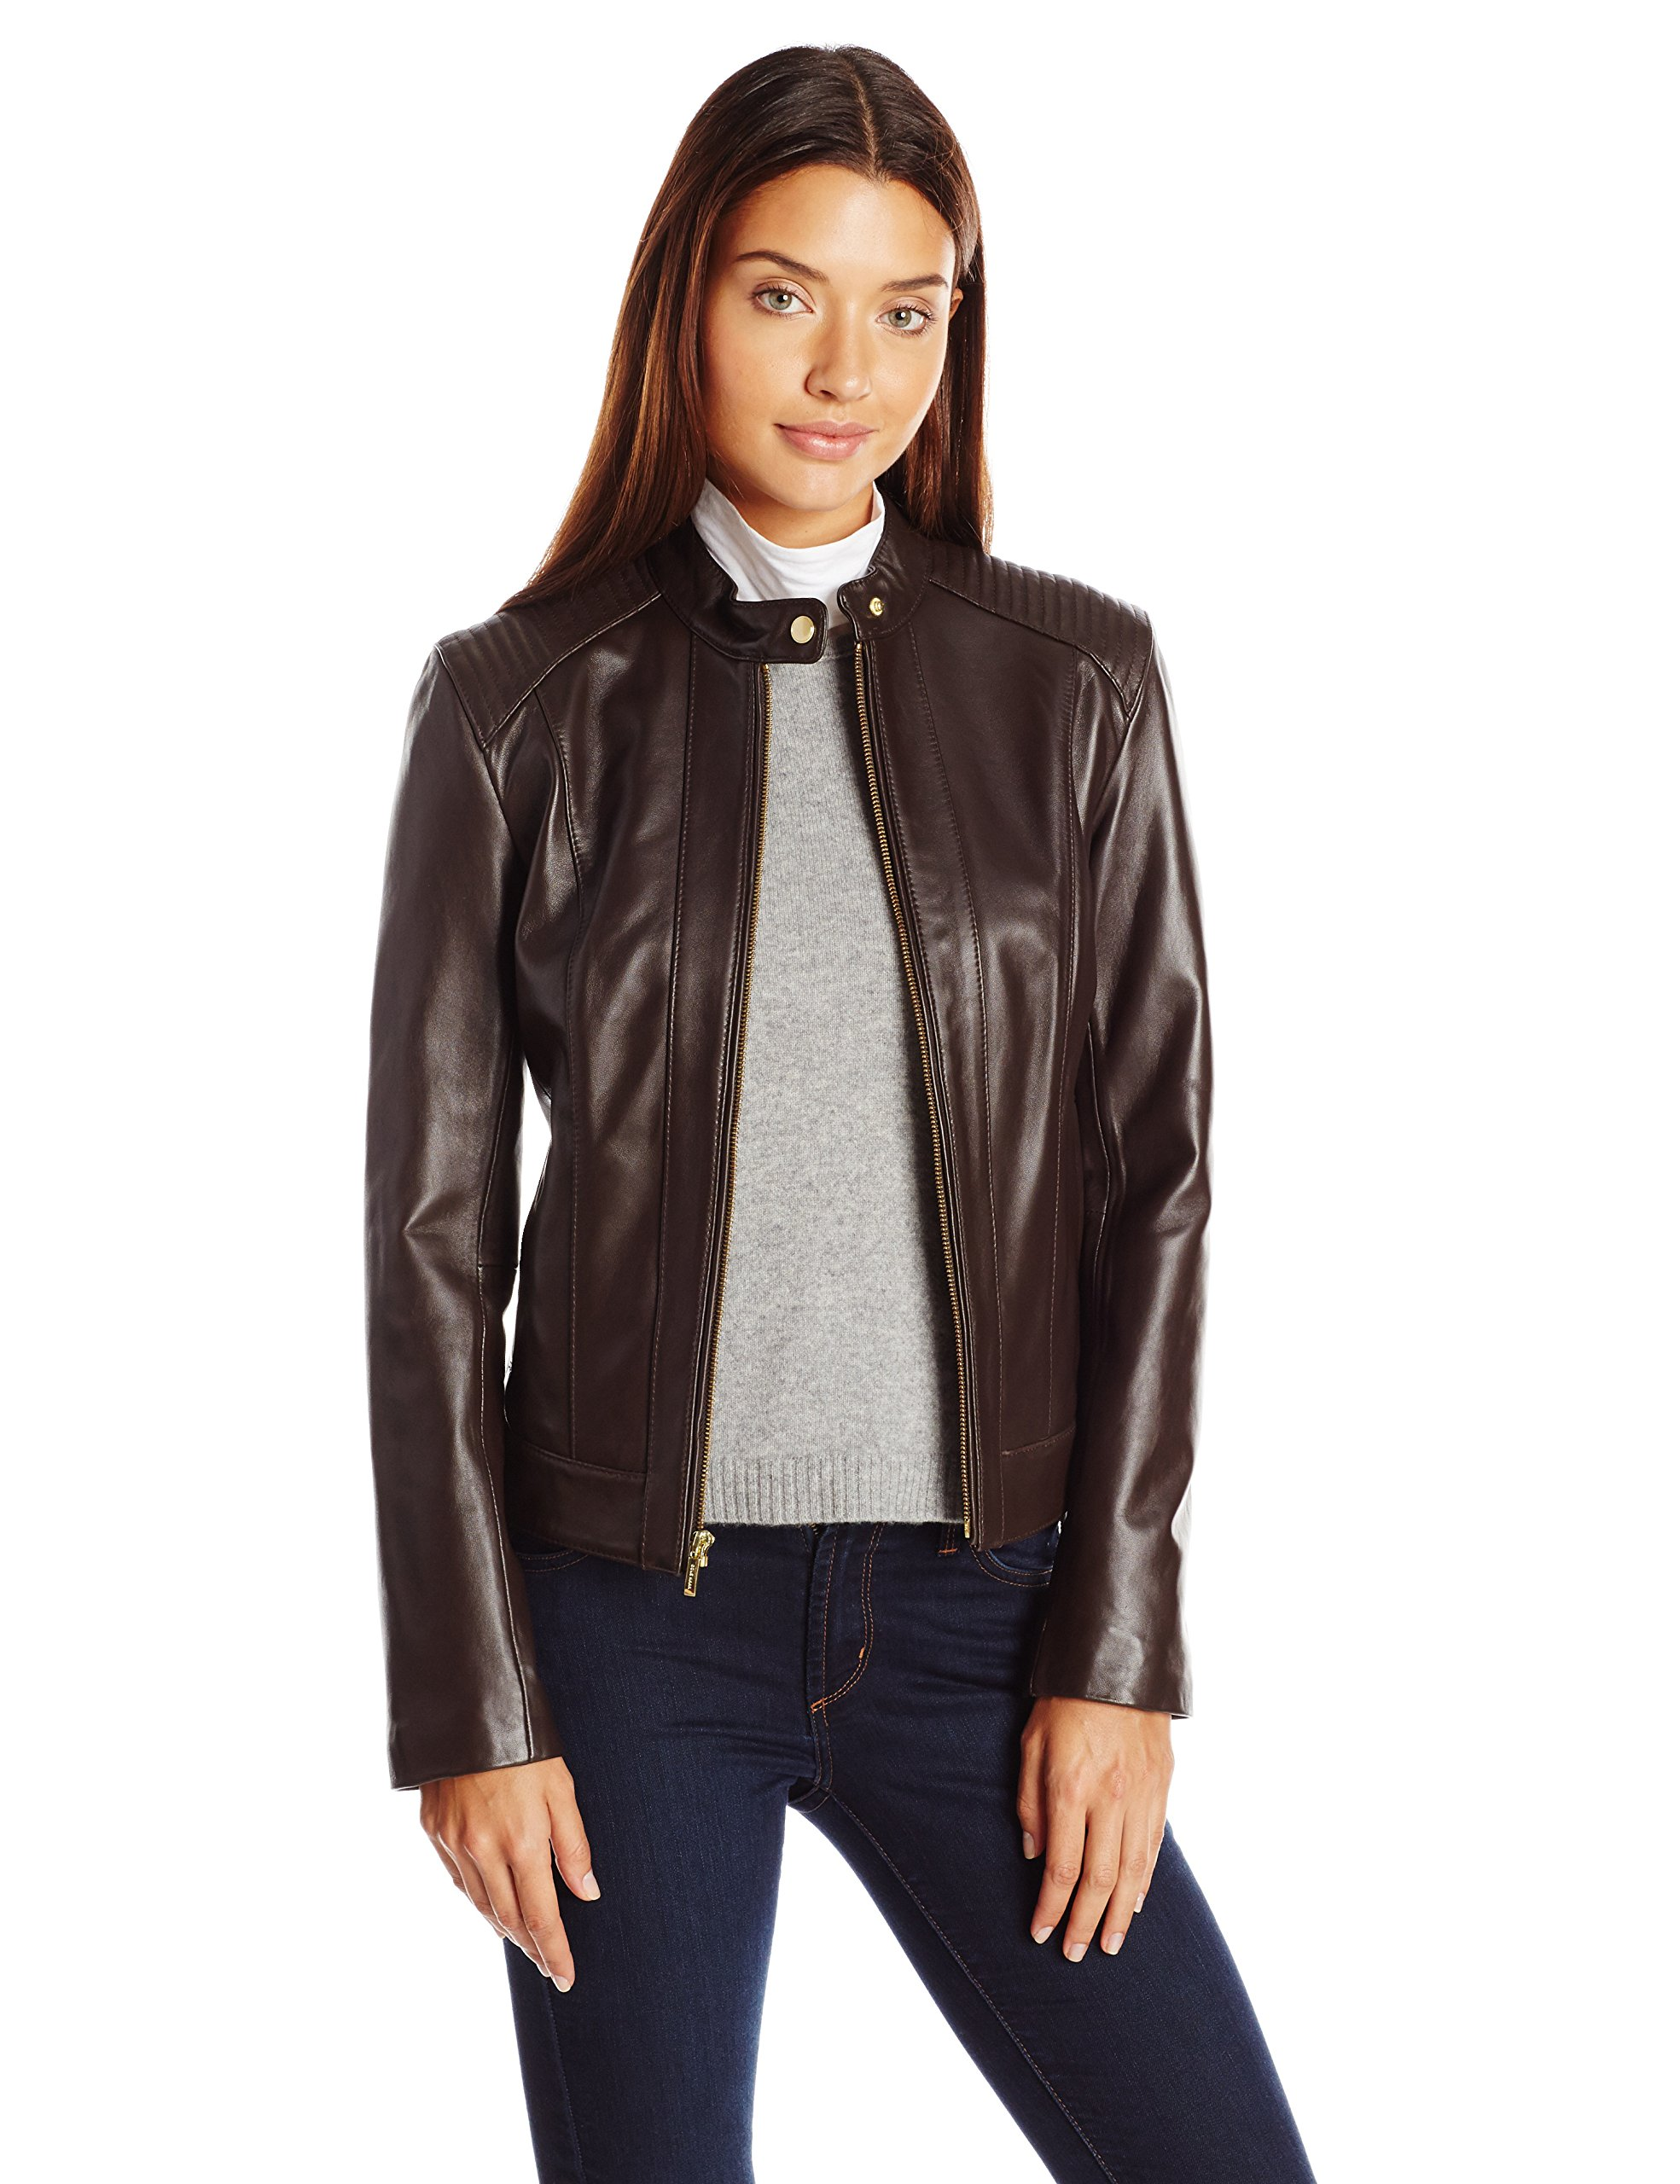 Cole Haan Women's Racer Jacket With Quilted Panels, Deep Espresso, Small